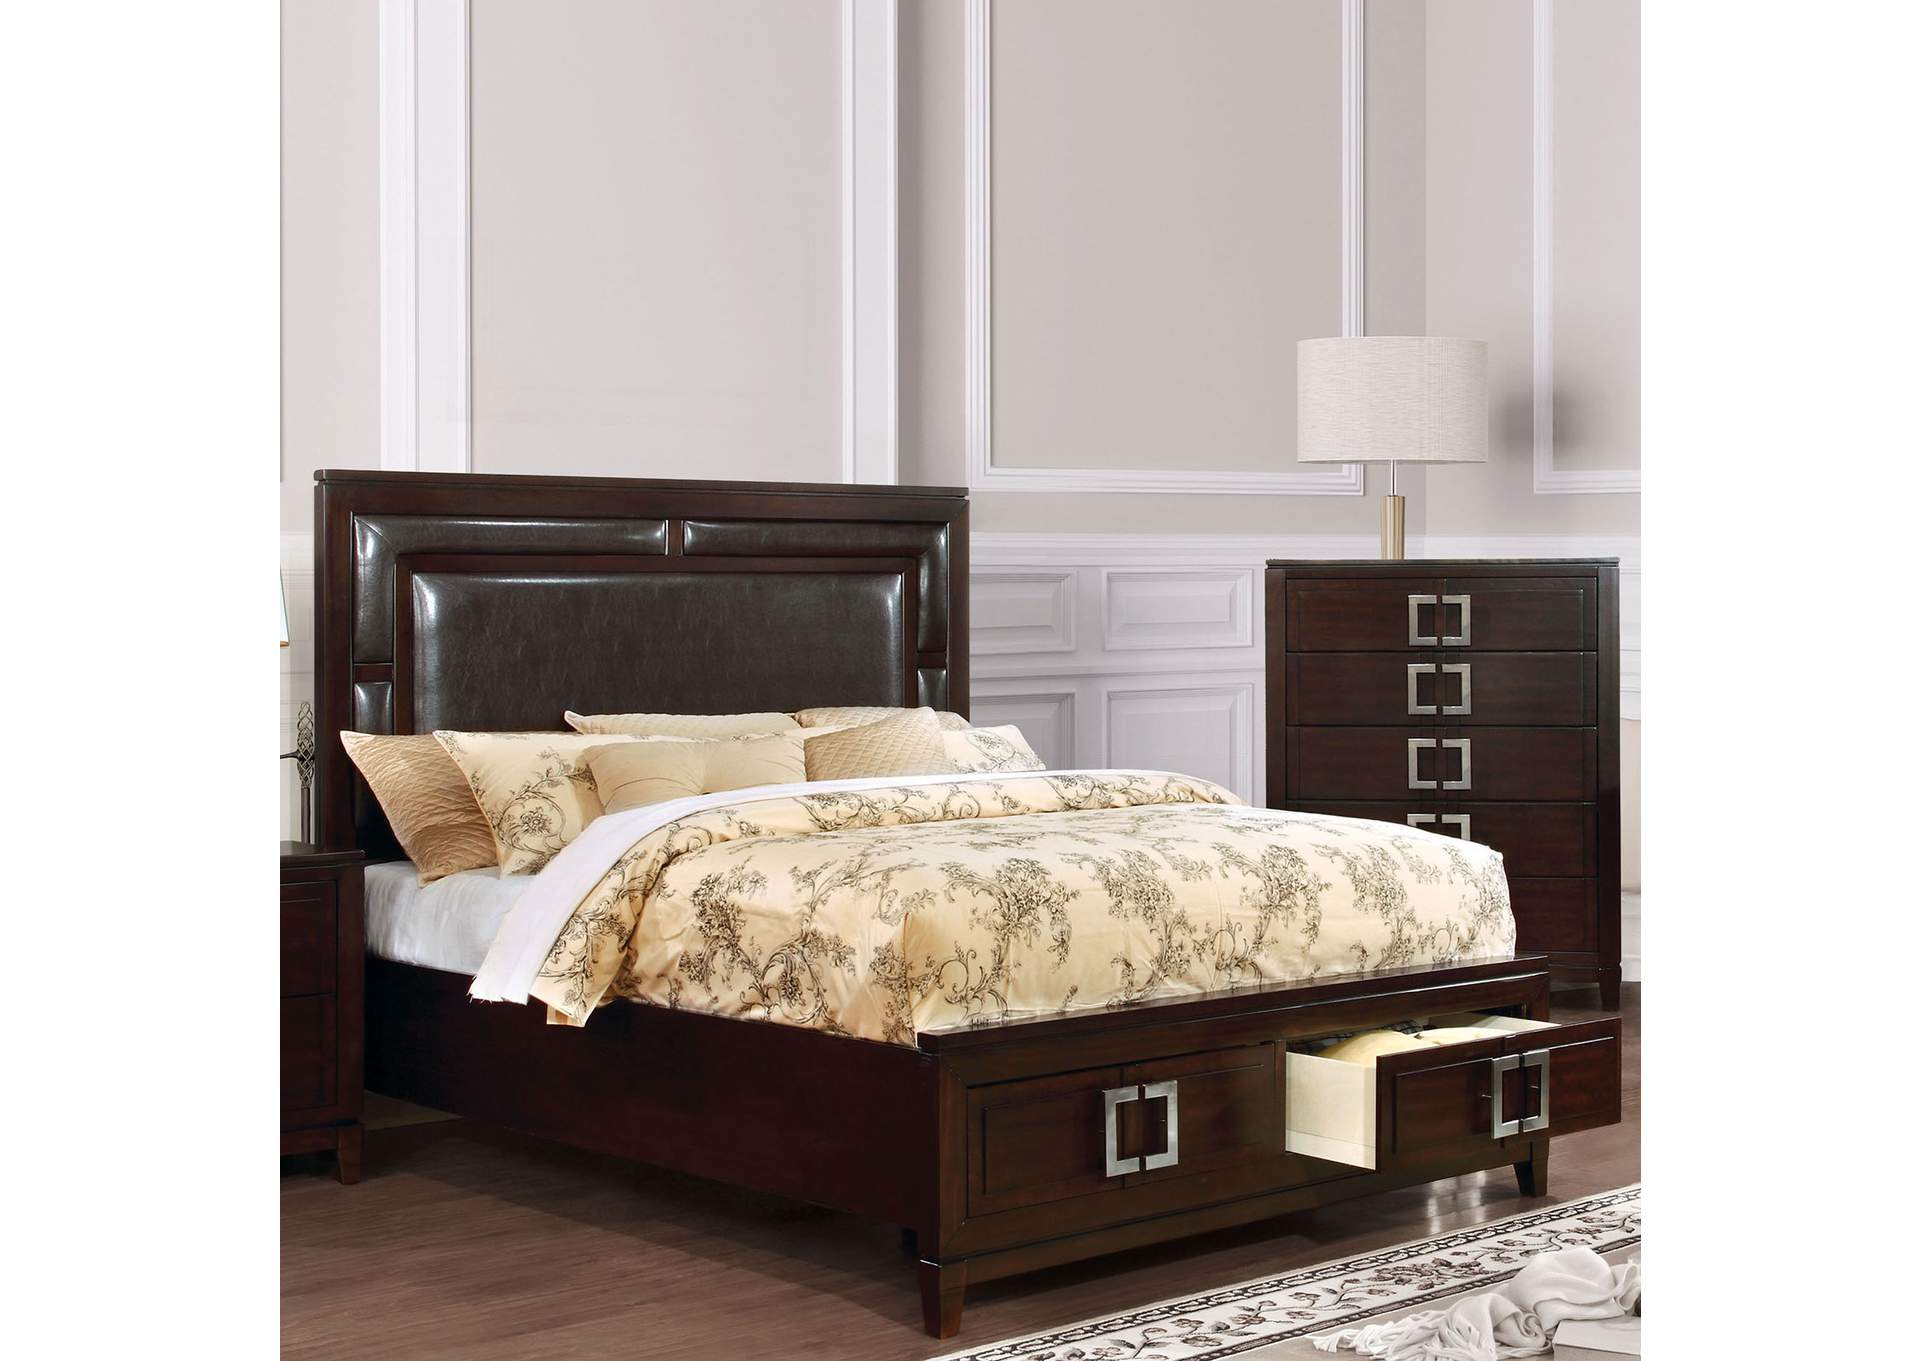 Balfour Brown Cherry Queen Storage Bed,Furniture of America